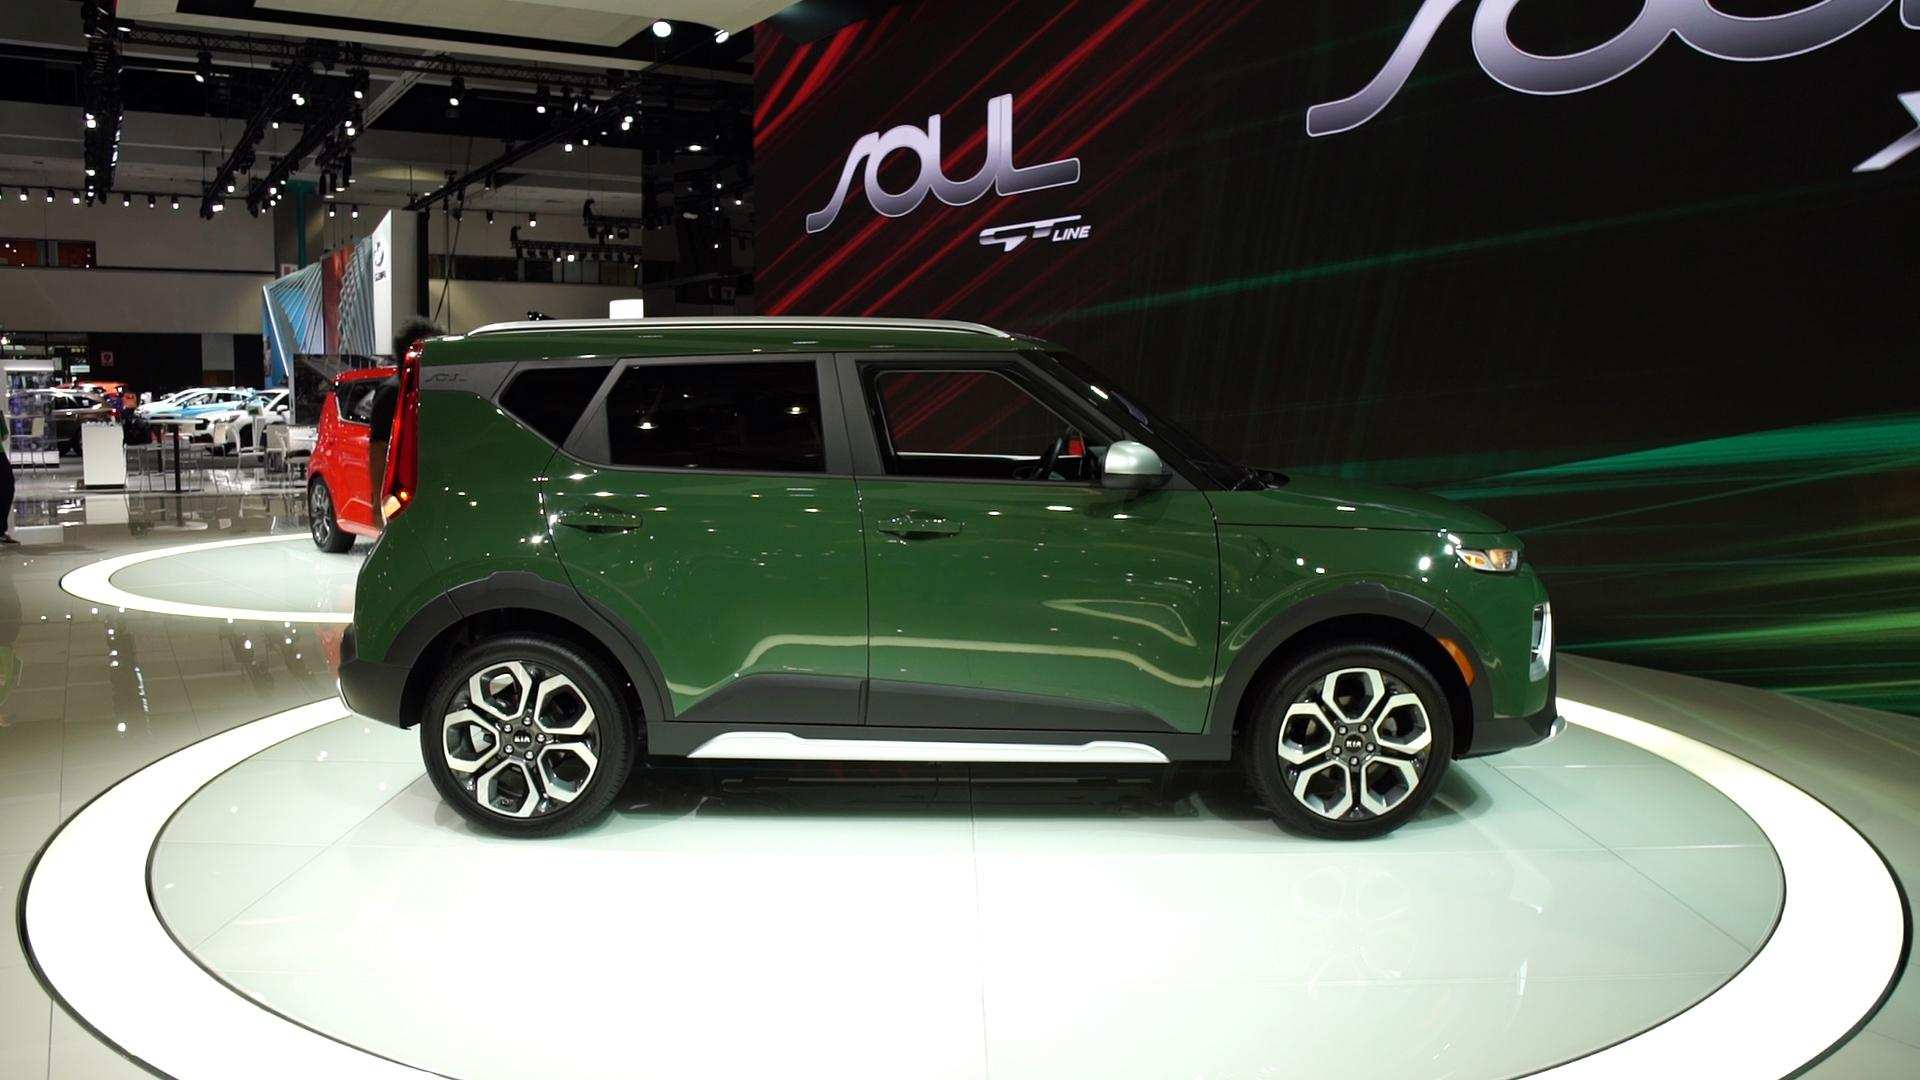 55 All New 2020 Kia Soul Brochure Price And Release Date